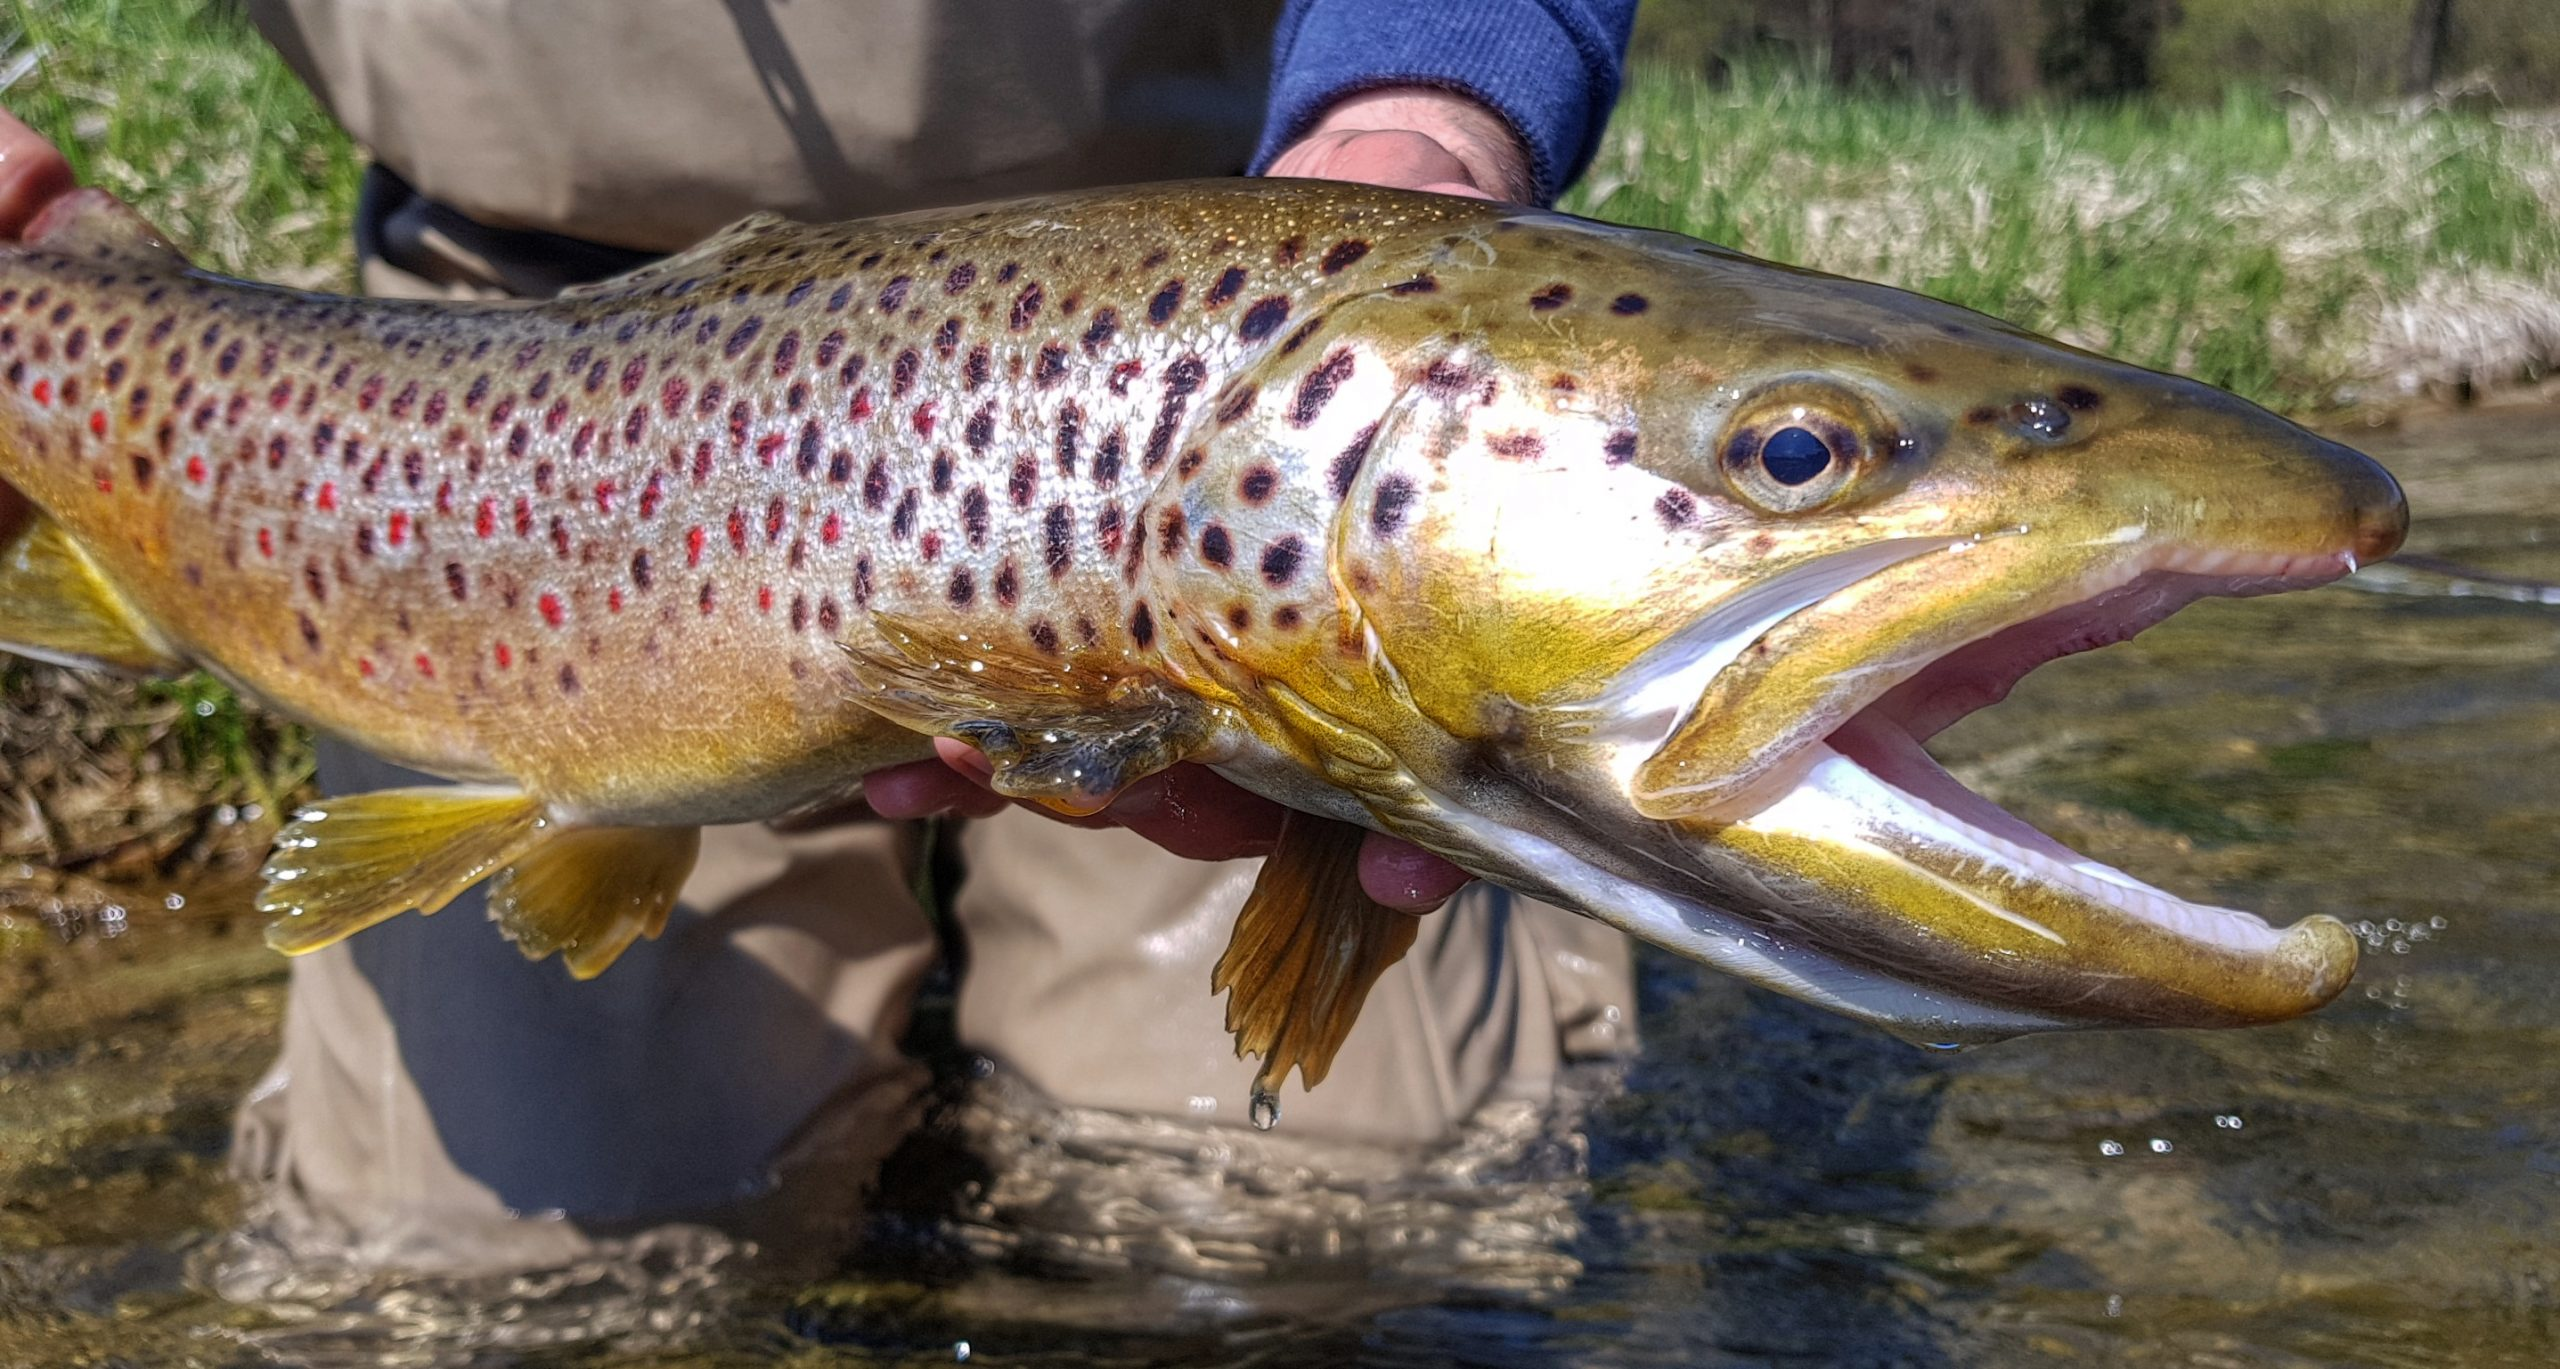 Brown trout from Dunajec River (Not San River)